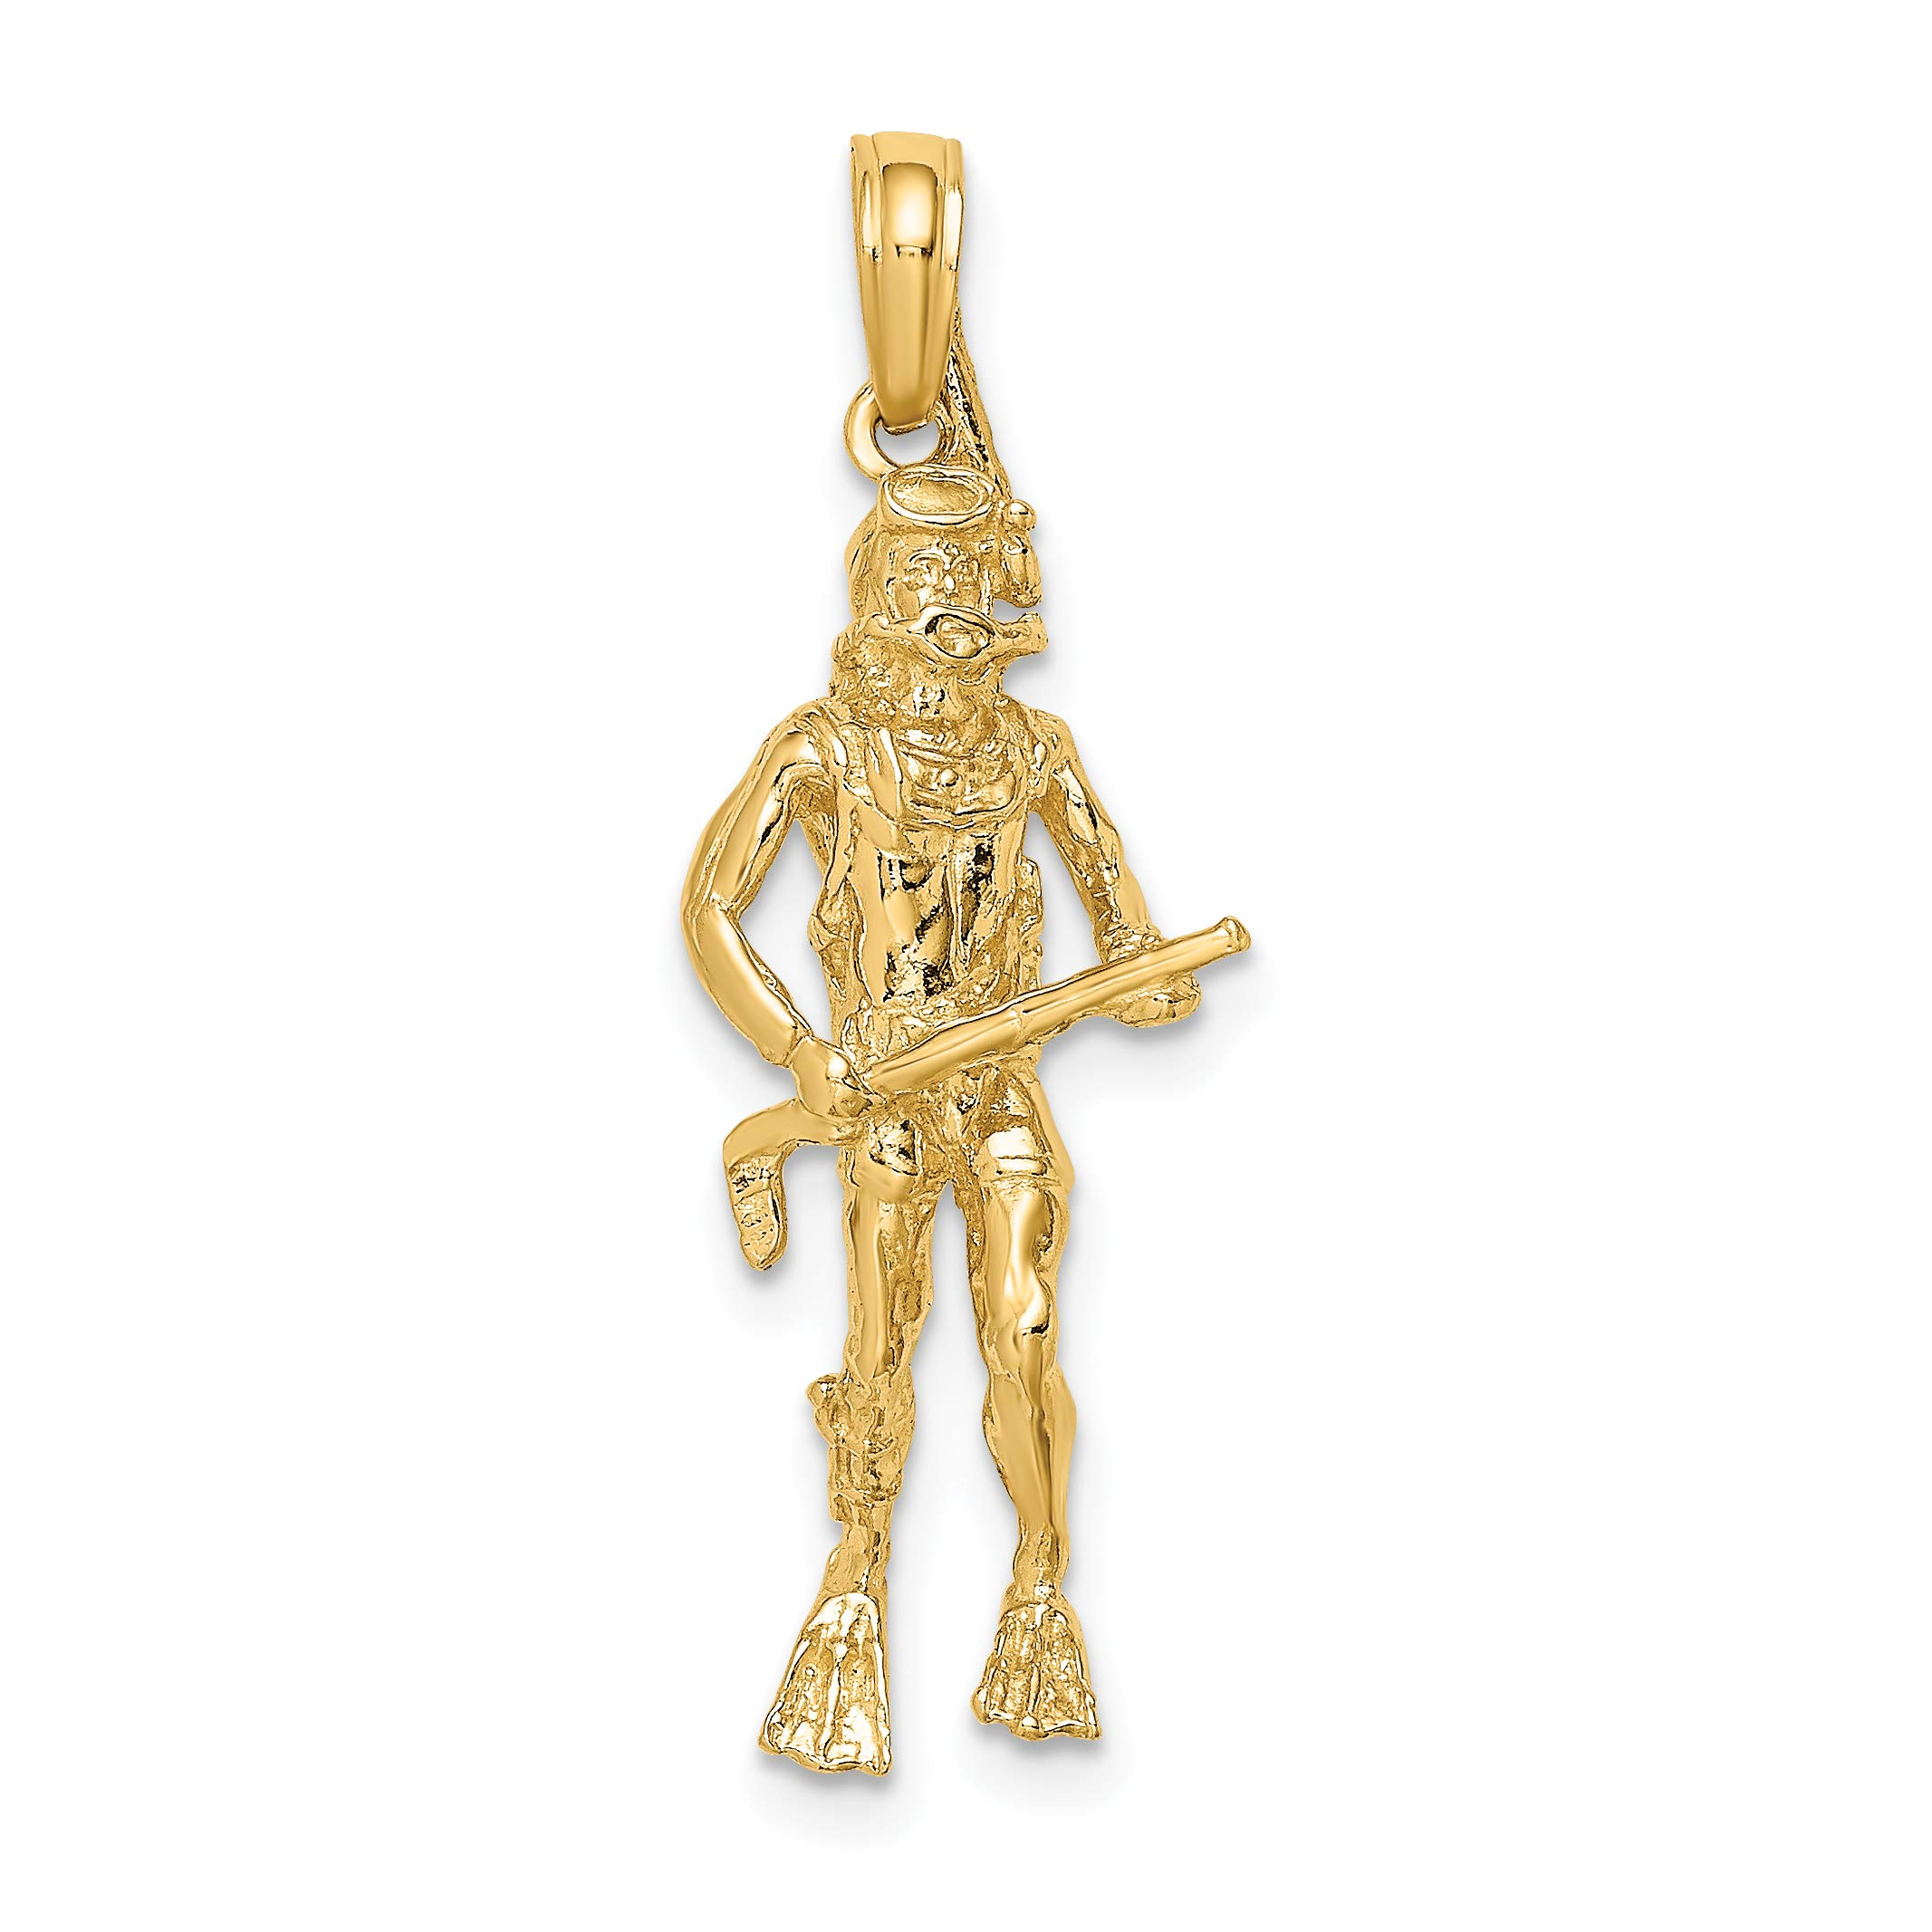 14k Yellow Gold Vertical Scuba Diver with Harpoon Spear Gun Pendant 29x11mm by Jewelry Stores Network